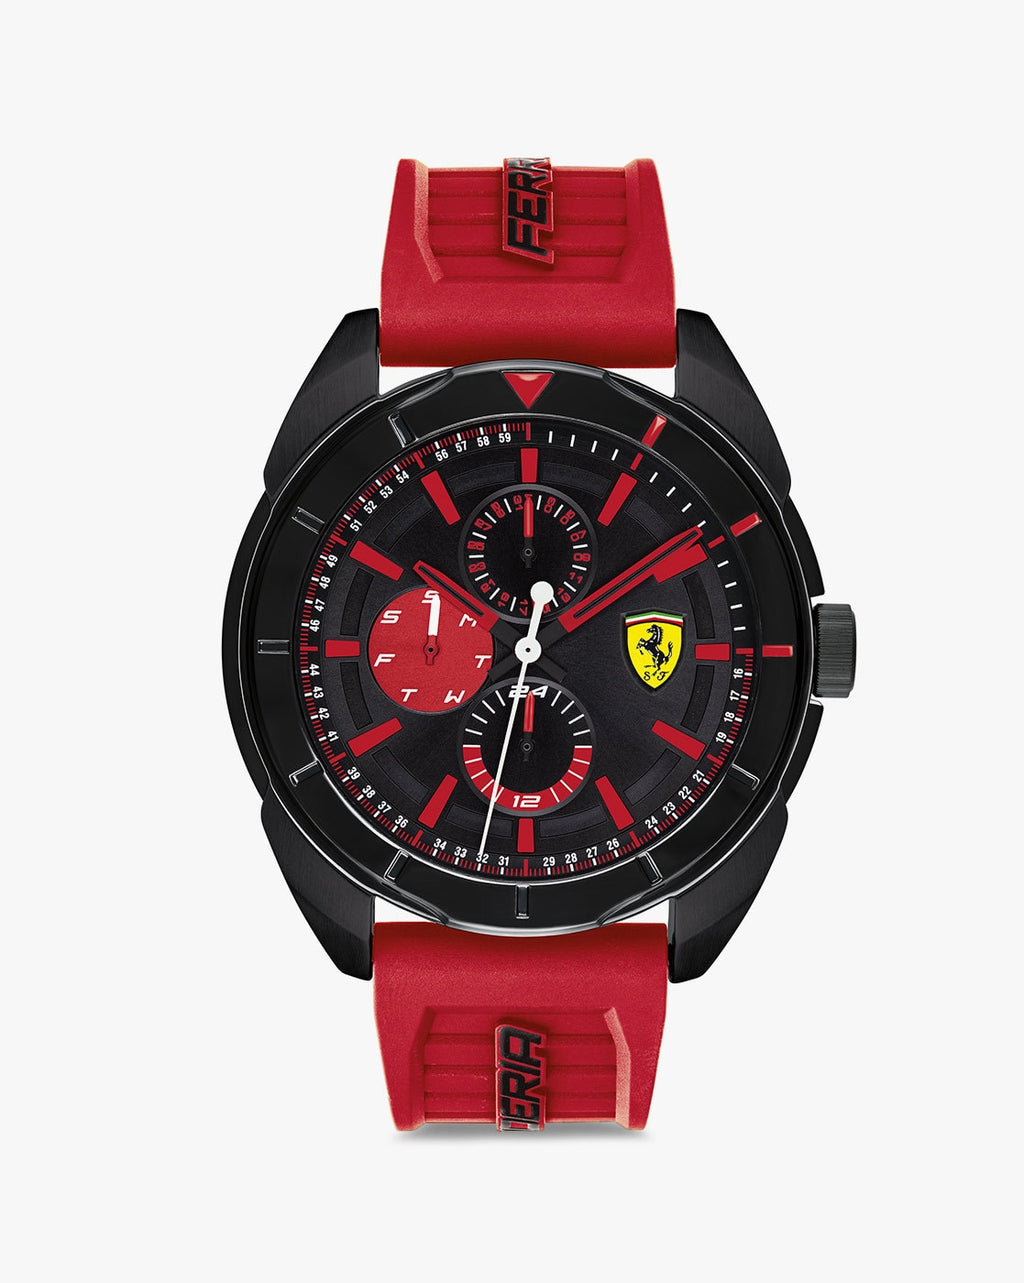 830576 Chronograph Watch with Silicone Strap